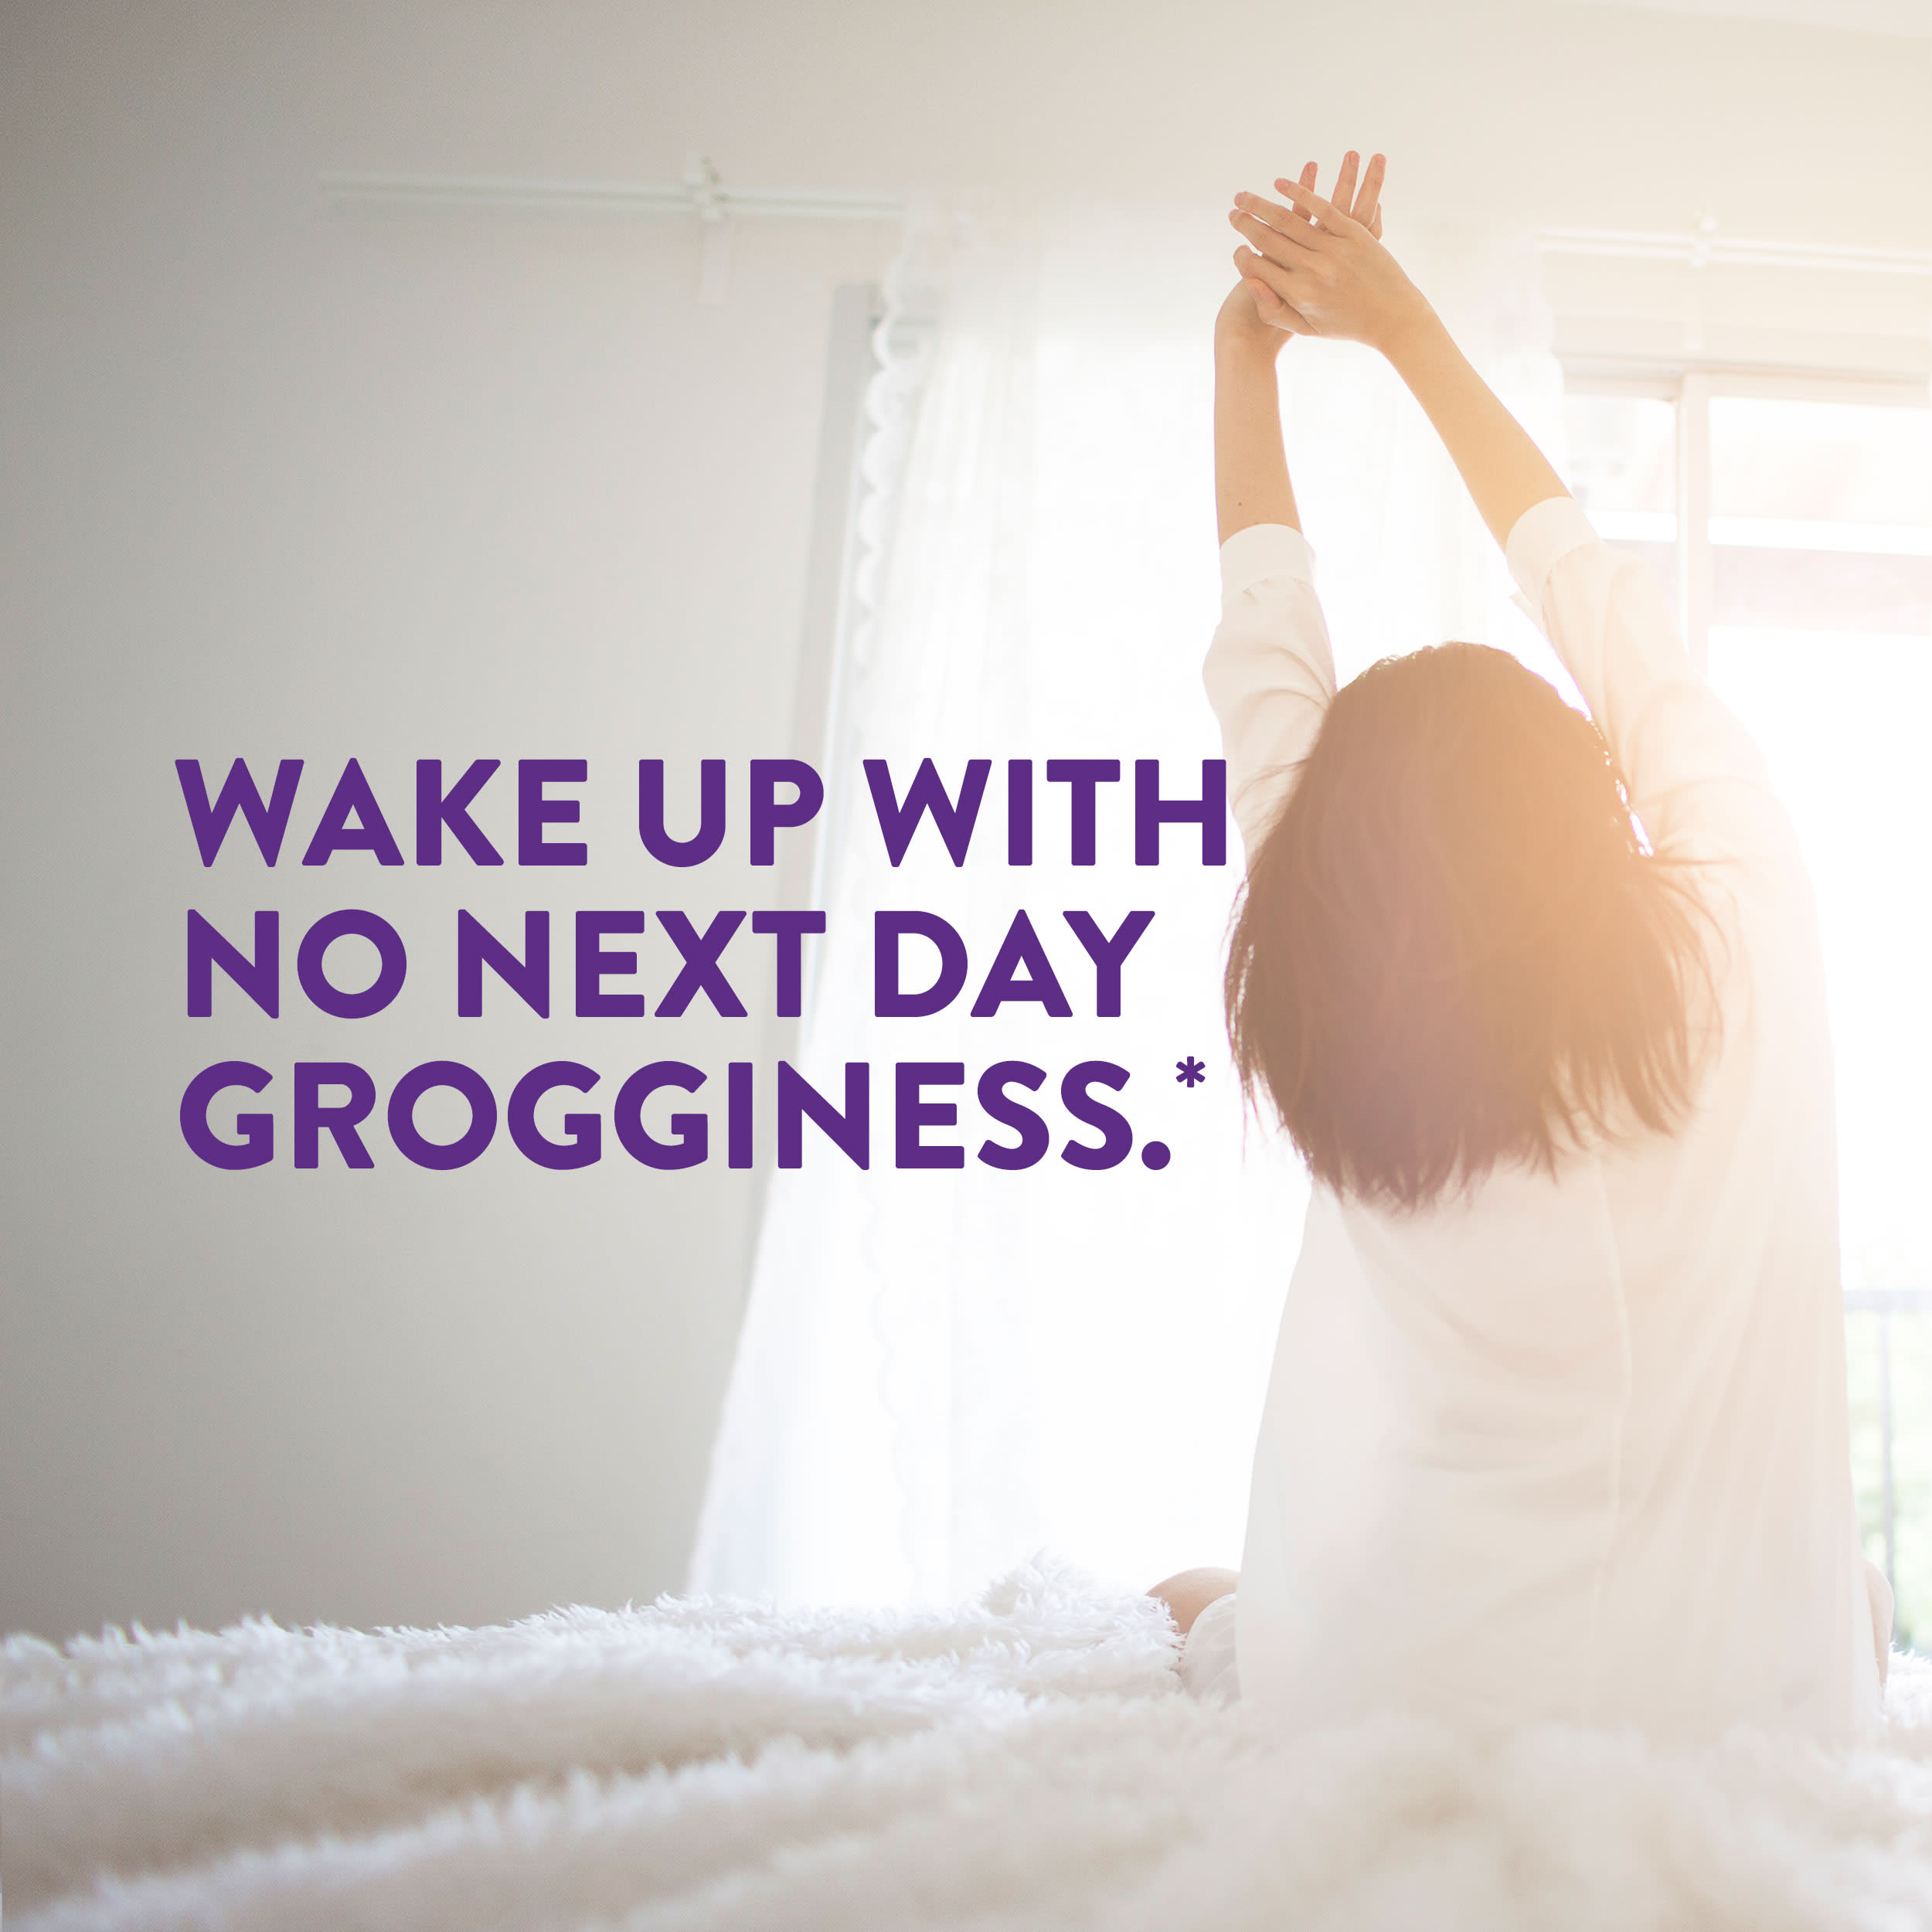 wake-up-with-no-next-day-grogginess